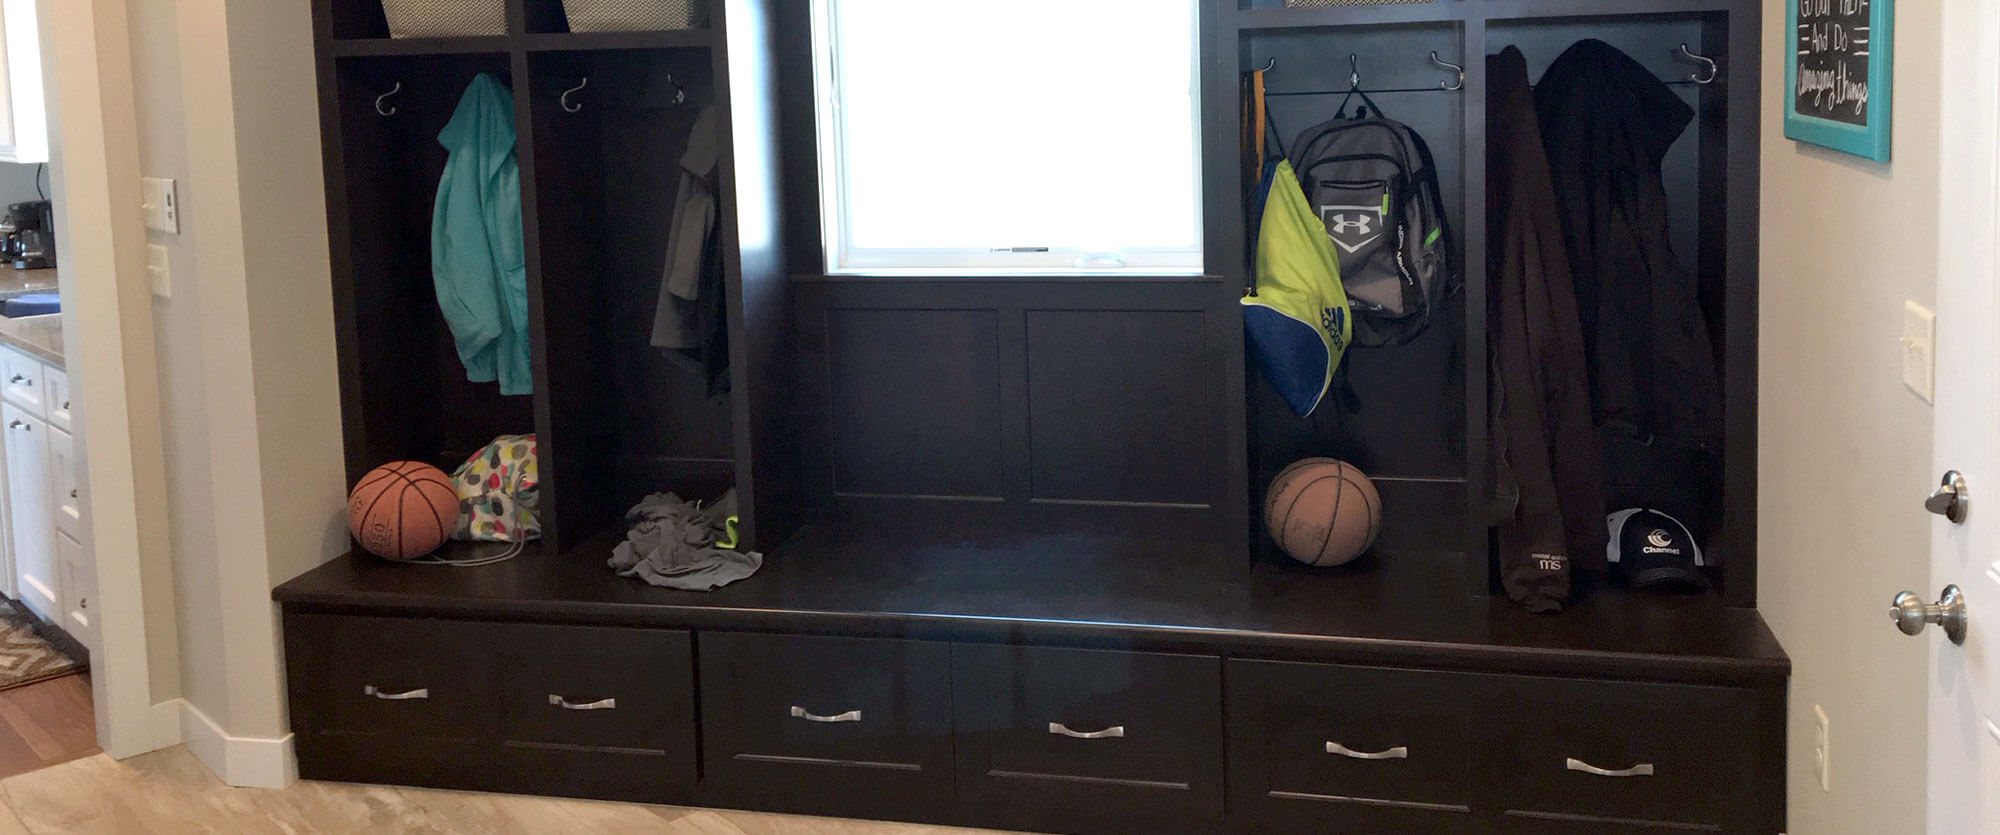 Custom entryway mudroom locker with jacket hooks, a seating bench, and under bench storage; designed, built, and installed by finewood Structures of Browerville, MN